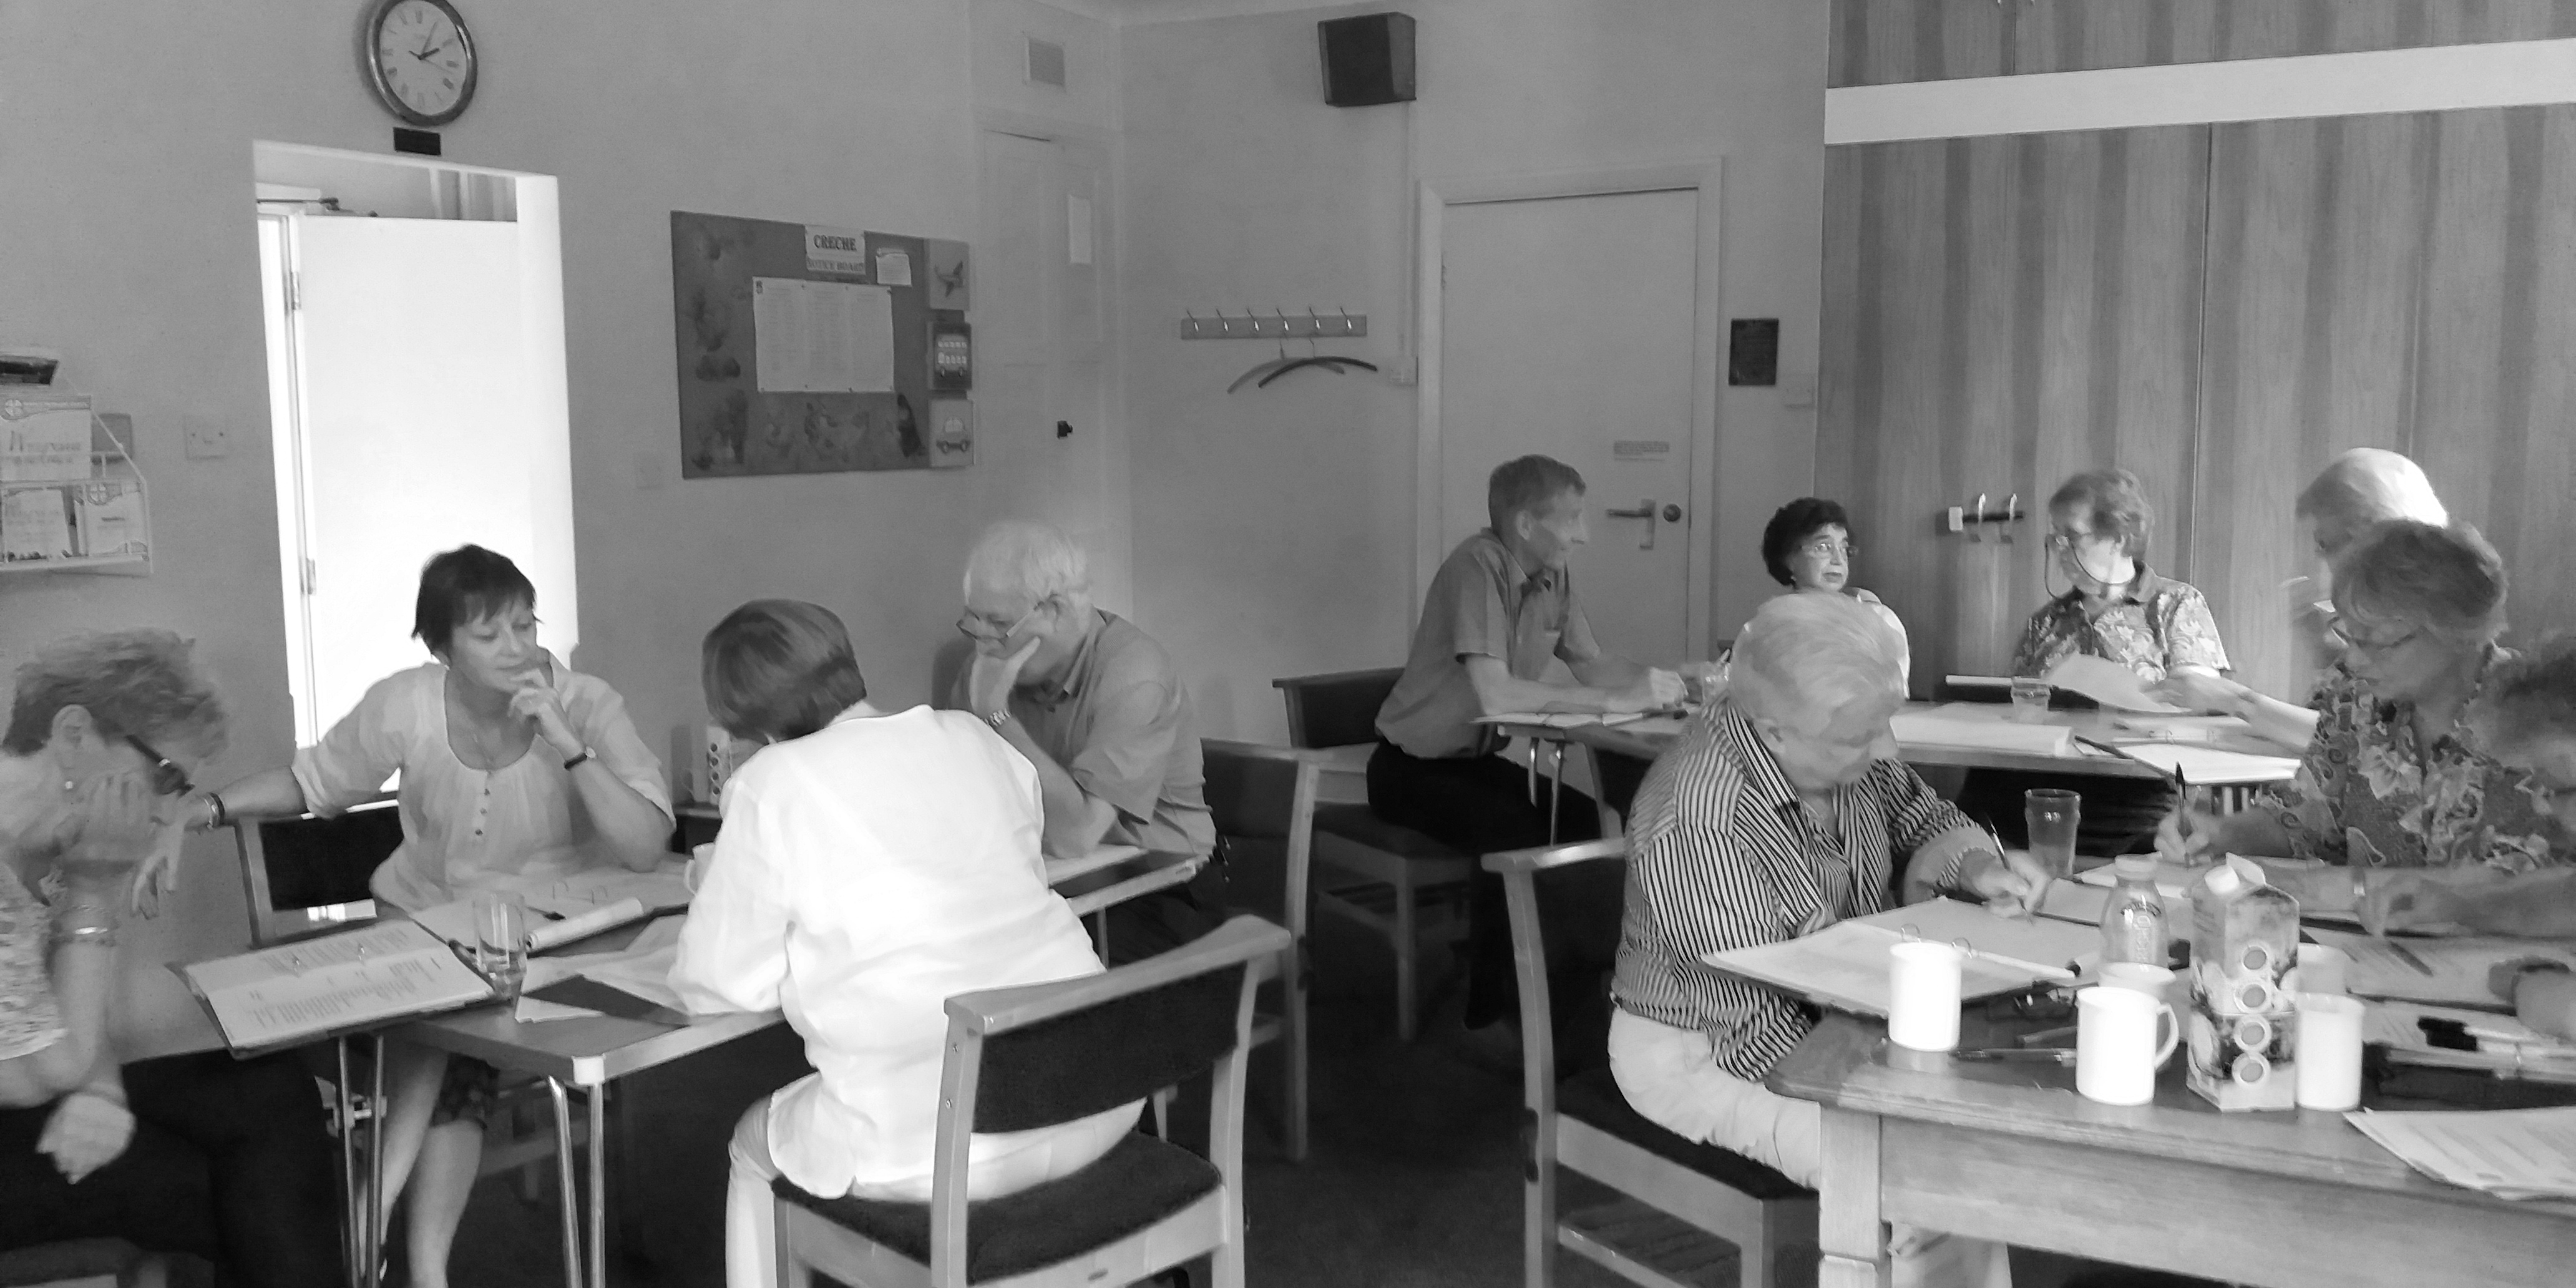 Photo of people sitting at each tables, looking at papers or having conversations